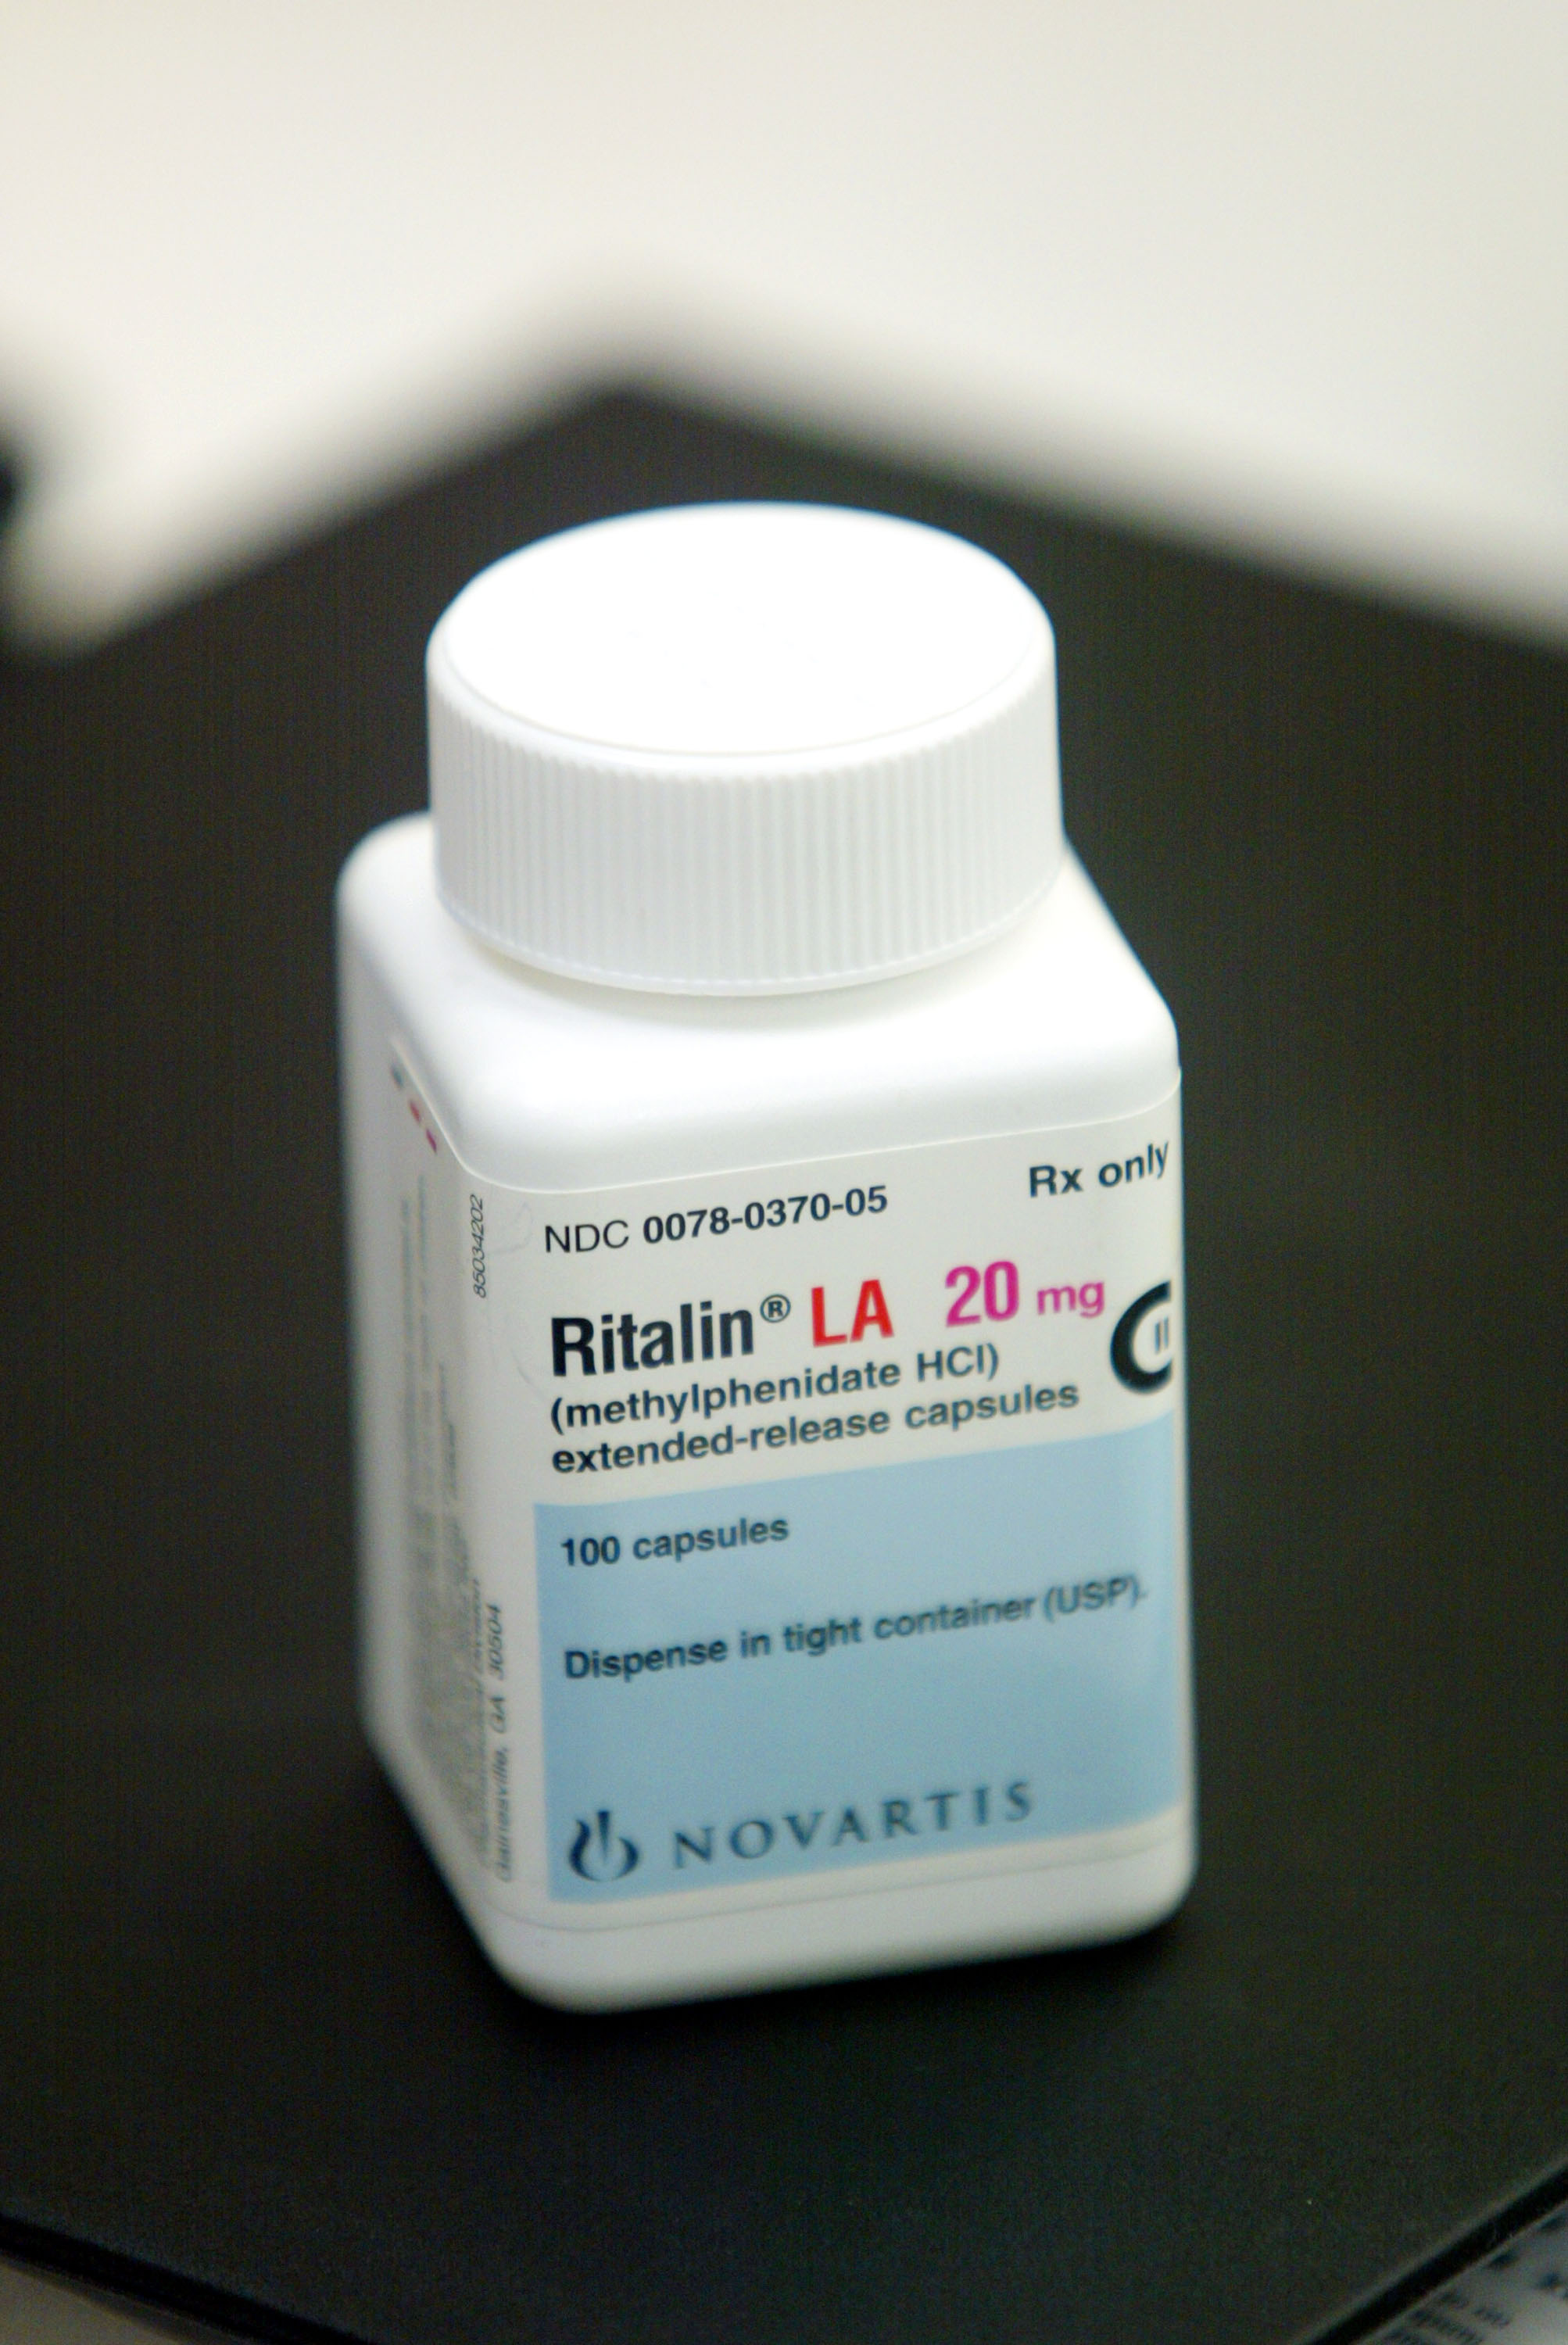 A bottle of Ritalin sits on the counter of the Post Haste Pharmacy And Surgical Store on June 16, 2003 in Hollywood, Florida. (Photo by Joe Raedle/Getty Images)